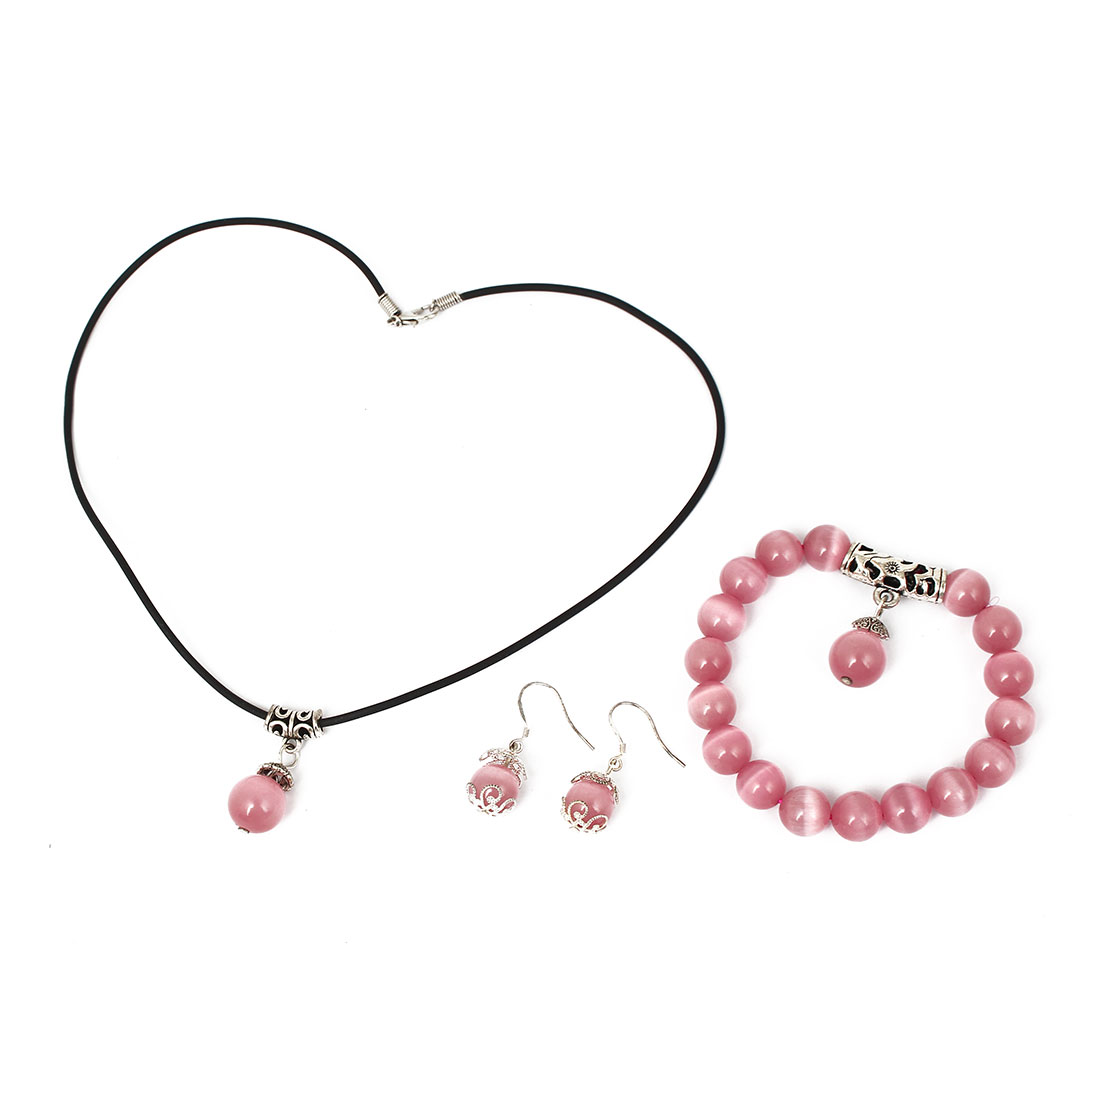 Women Plastic Beads Design Necklace Bracelet Bangle Hook Earrings Set 3 in 1 Pink